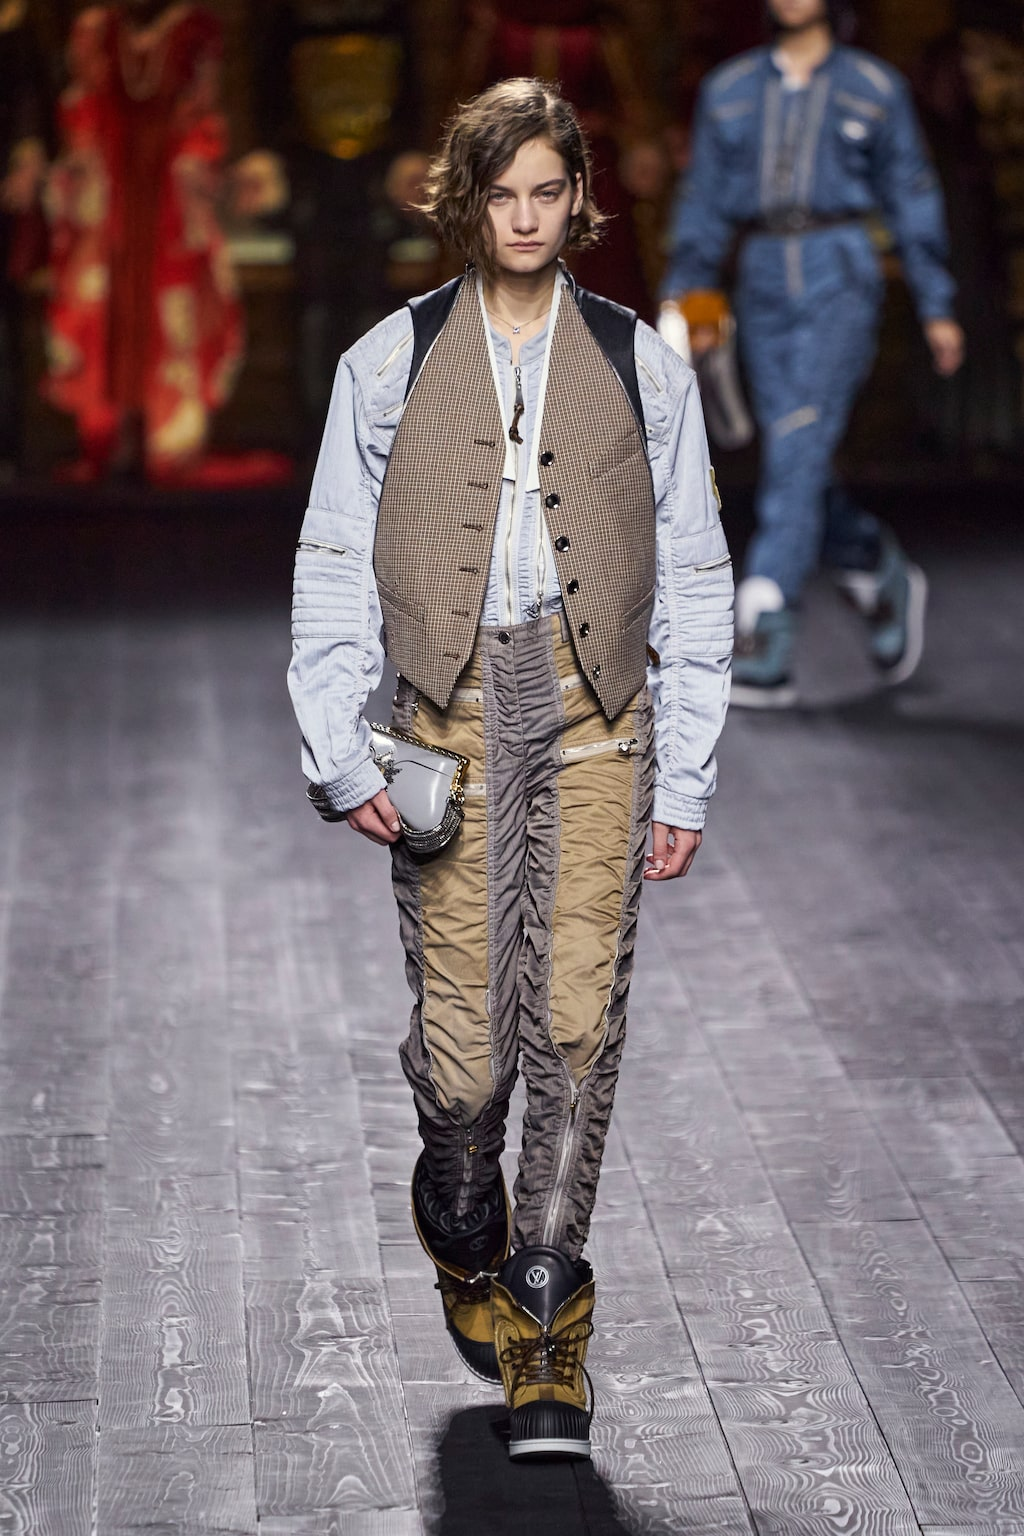 Höstmode 2020: androgynt hos Louis Vuitton AW20.